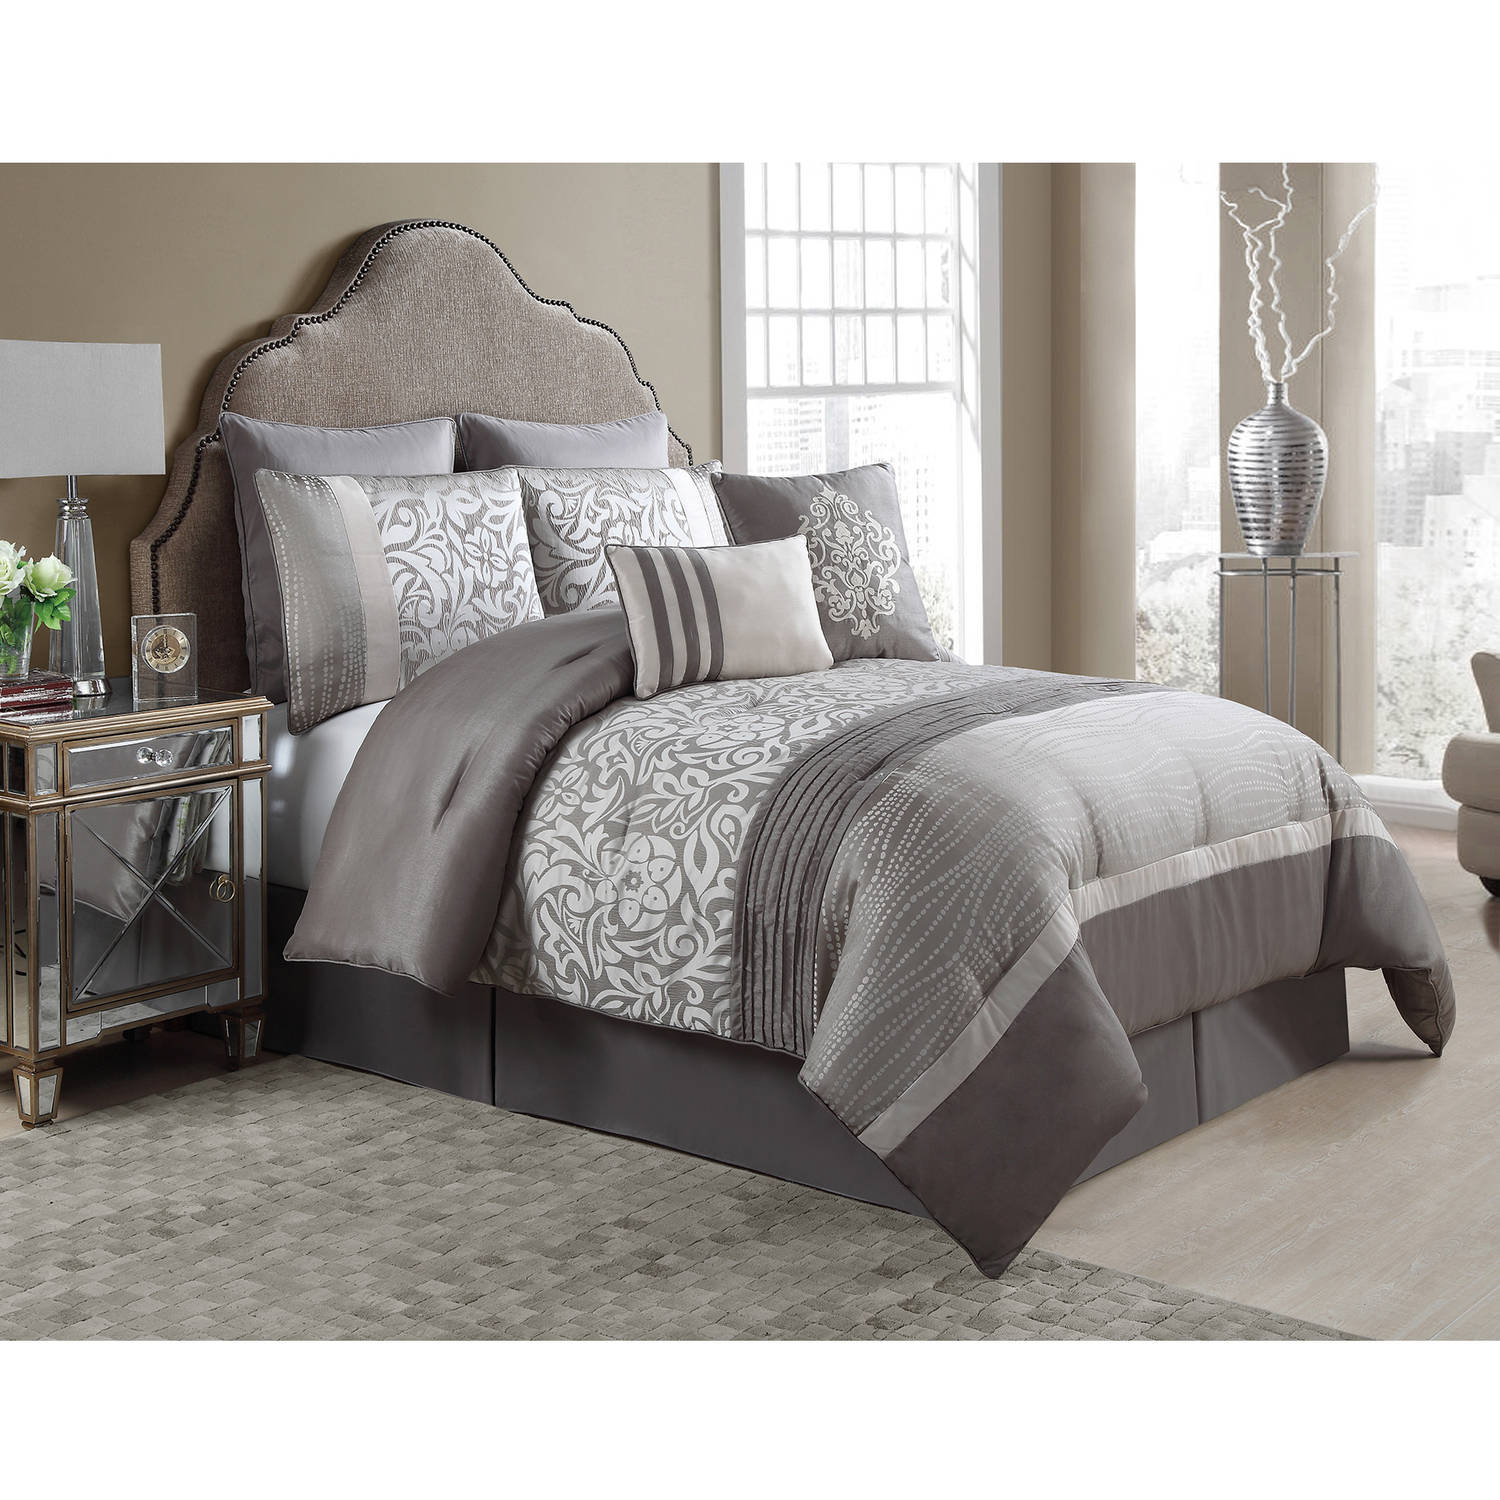 VCNY Home Arcadia 8-Piece Floral Embroidered Ruched Bedding Comforter Set, Euro Shams Included